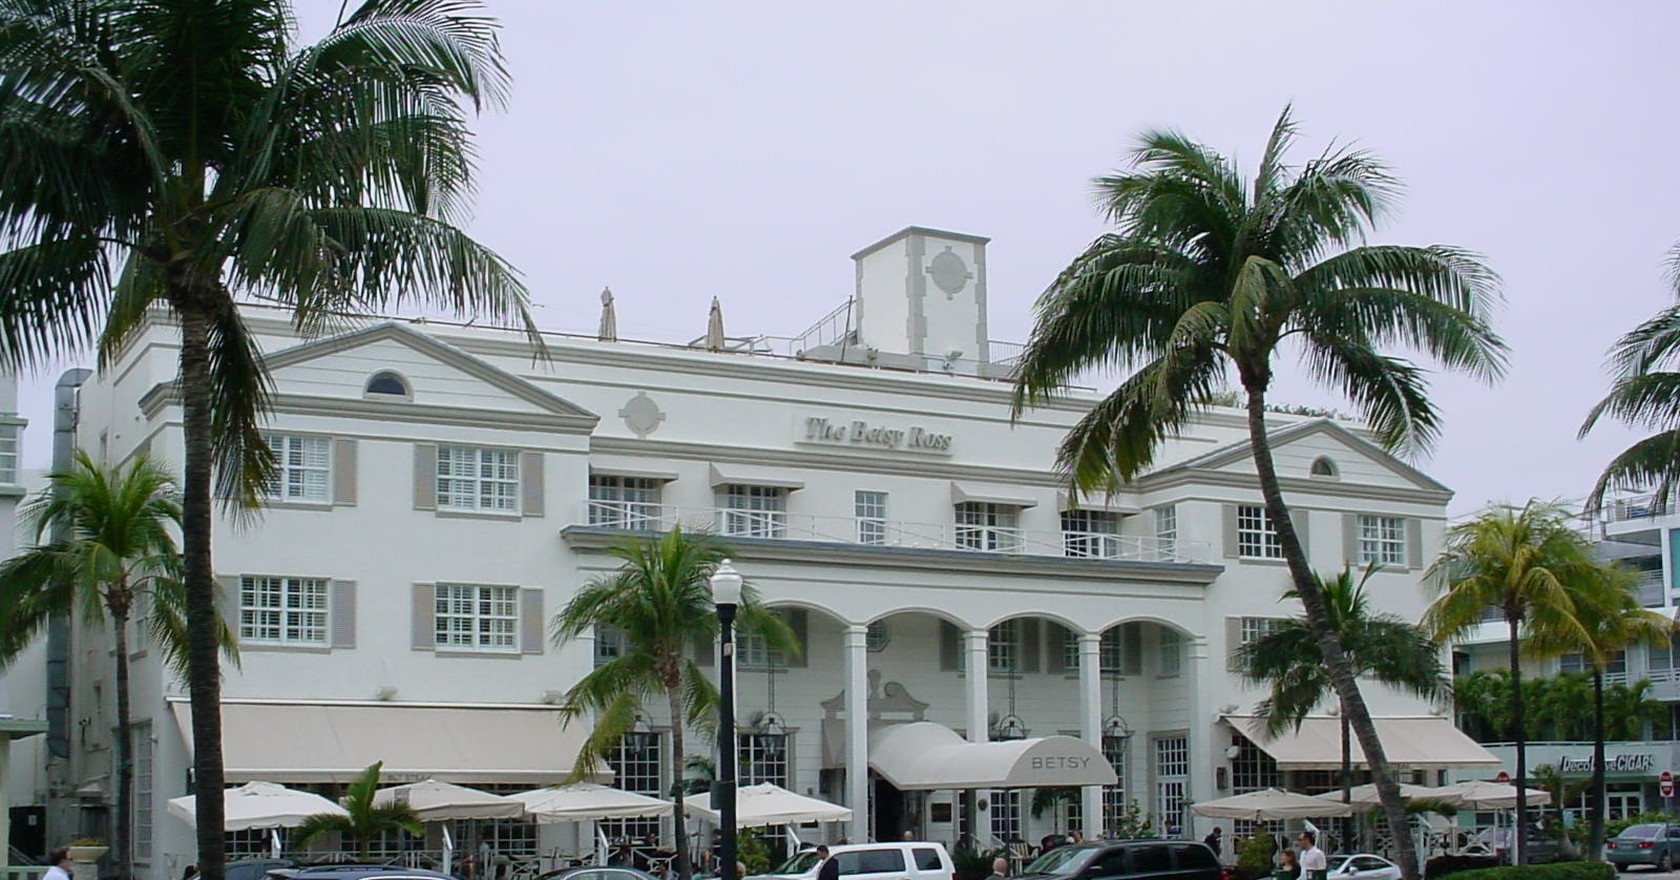 The Betsy Ross Hotel South Beach Courtesy Of Phillip Pessar Flickr